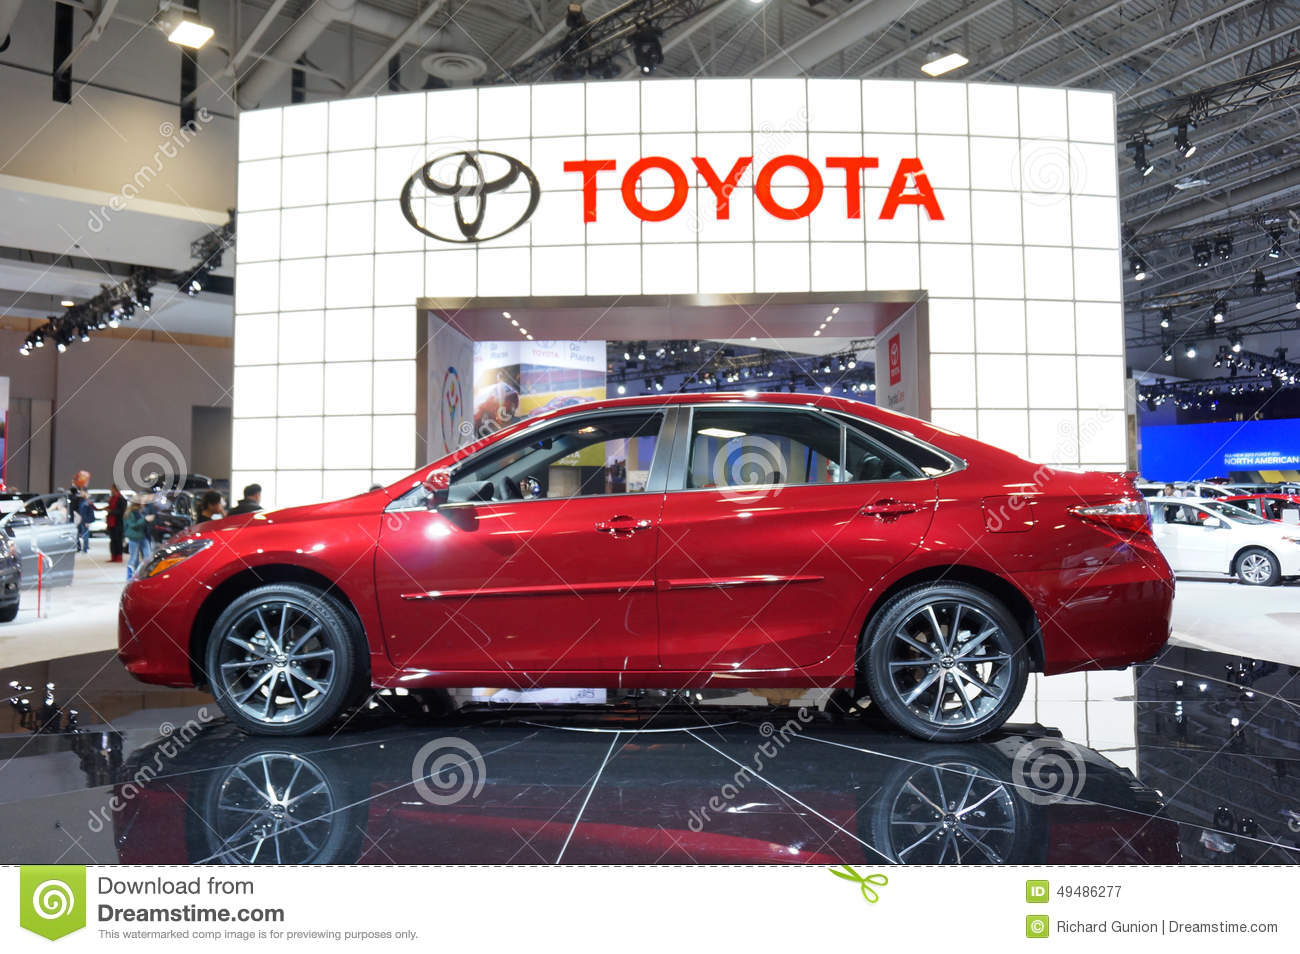 2015 toyota camry editorial photography image 49486277. Black Bedroom Furniture Sets. Home Design Ideas